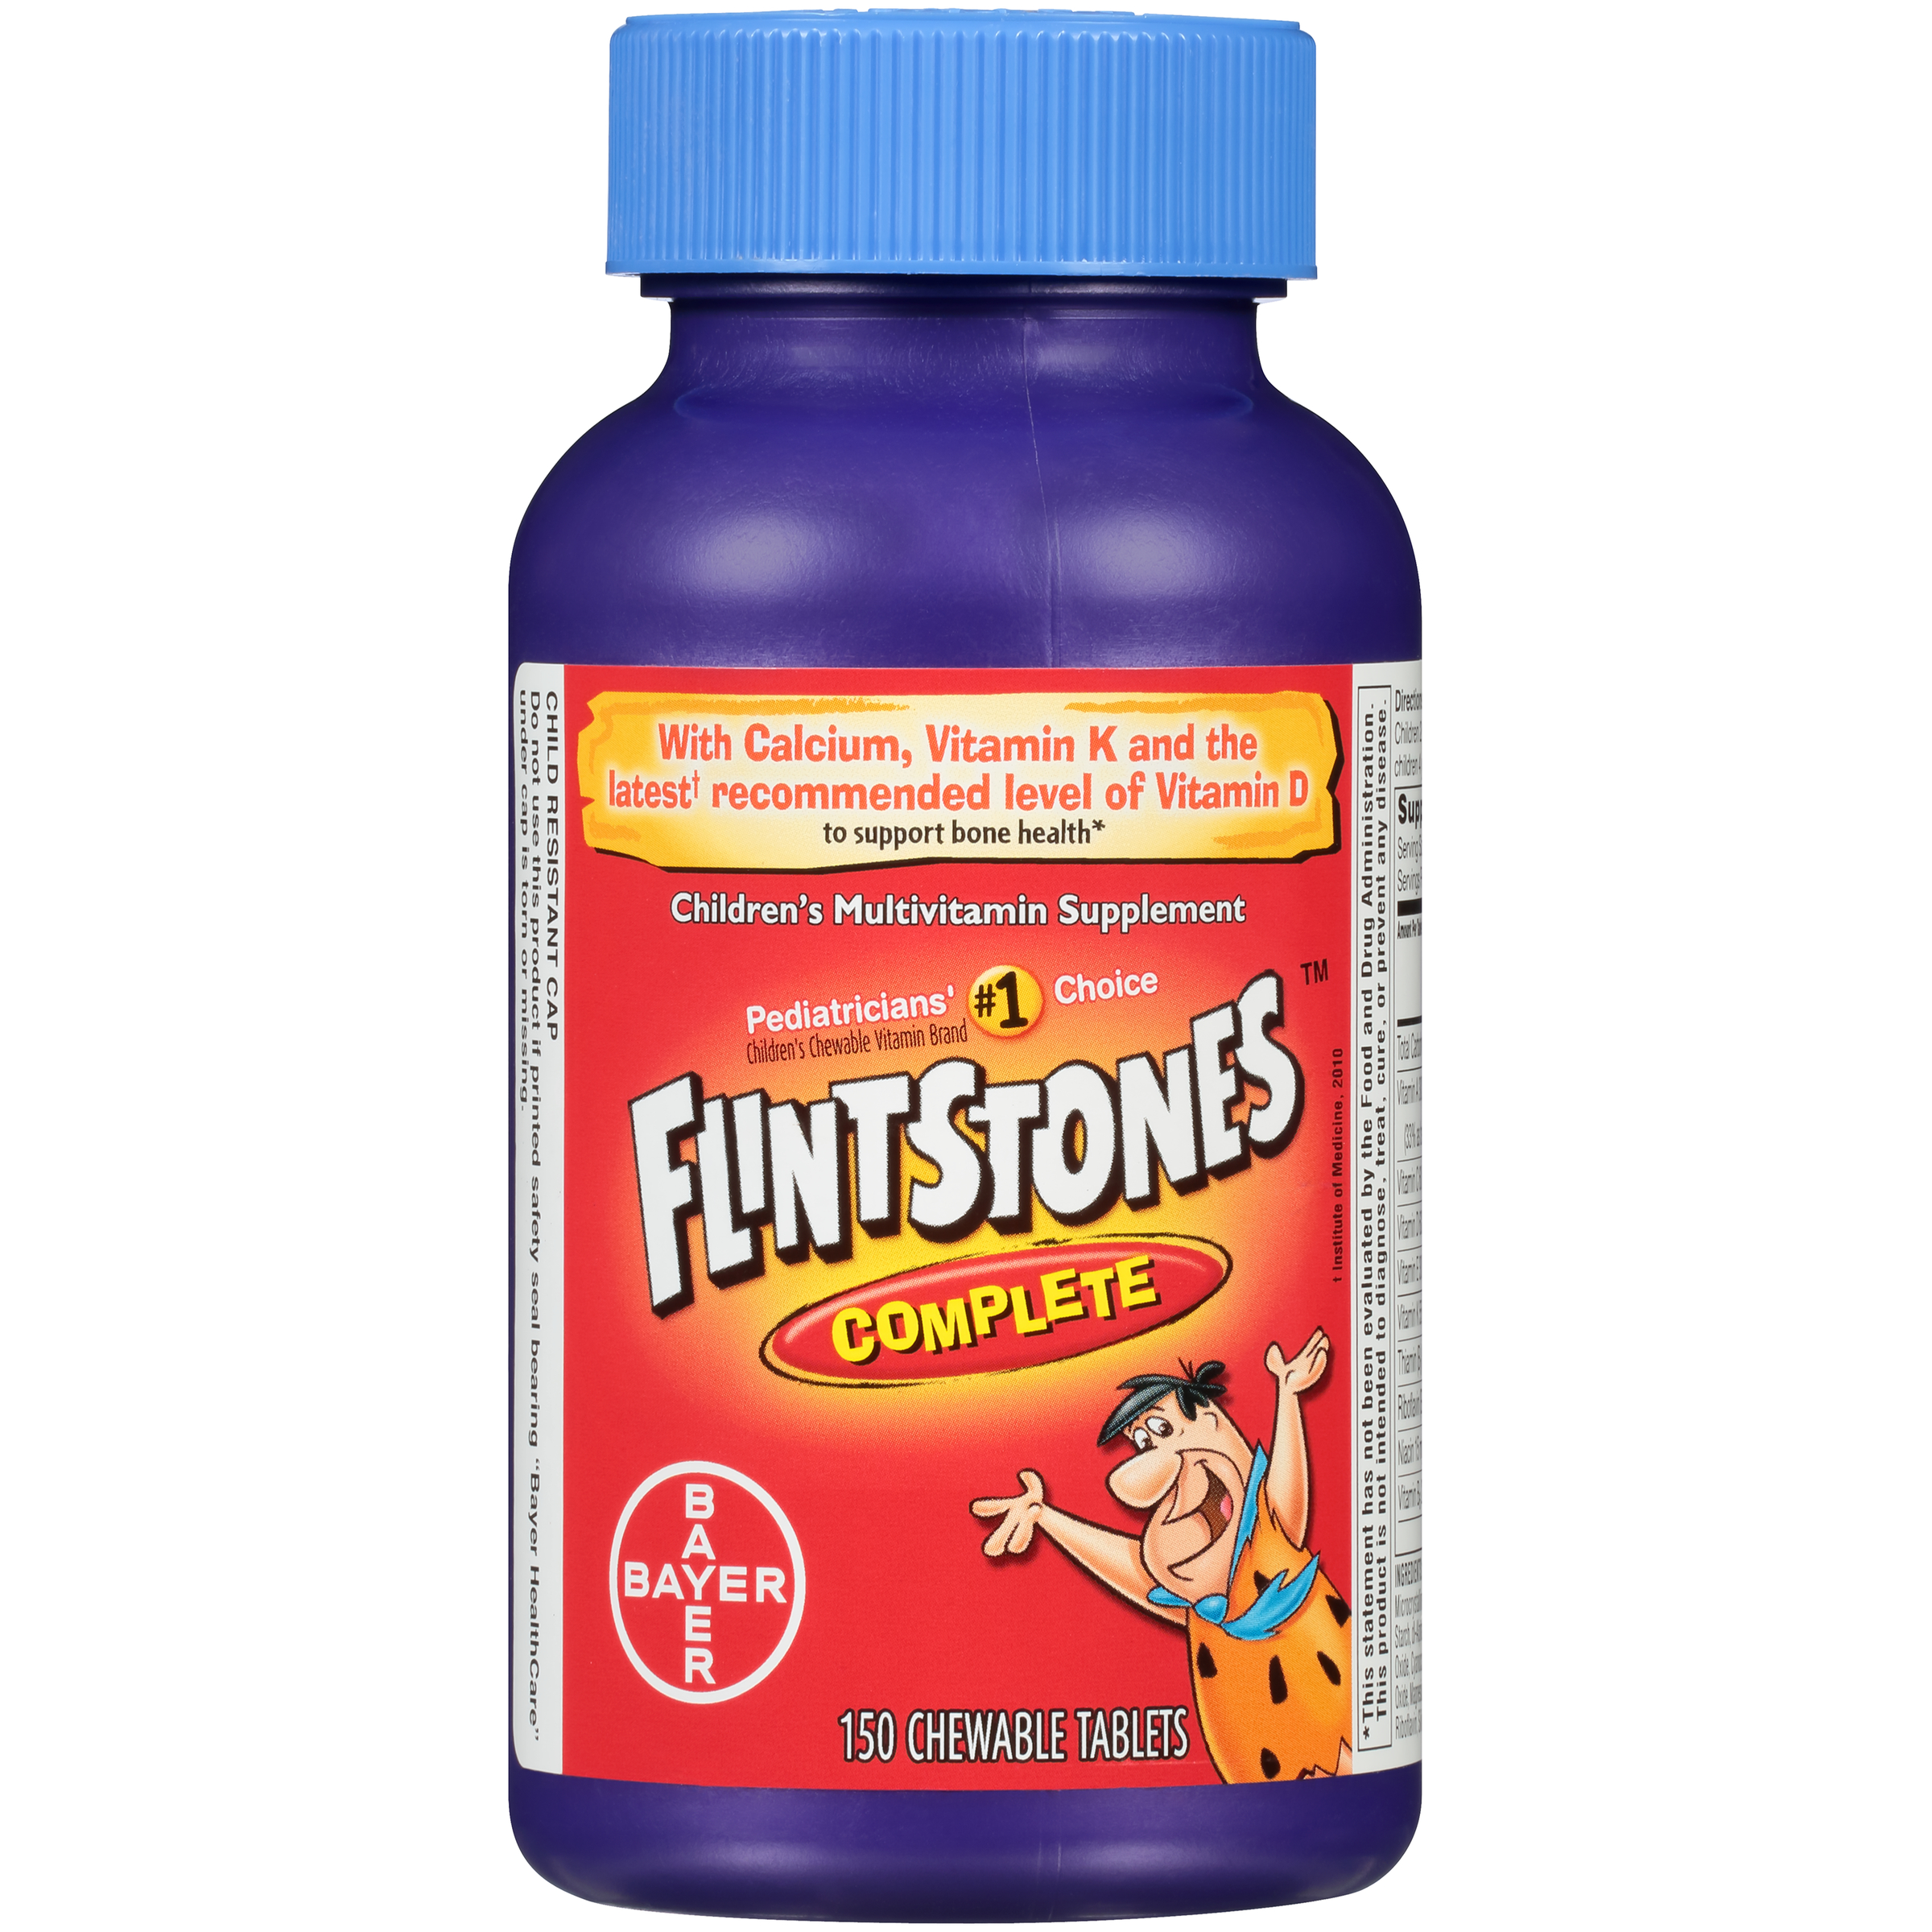 Flintstones Children's Complete Chewable Multivitamin, 150 Count